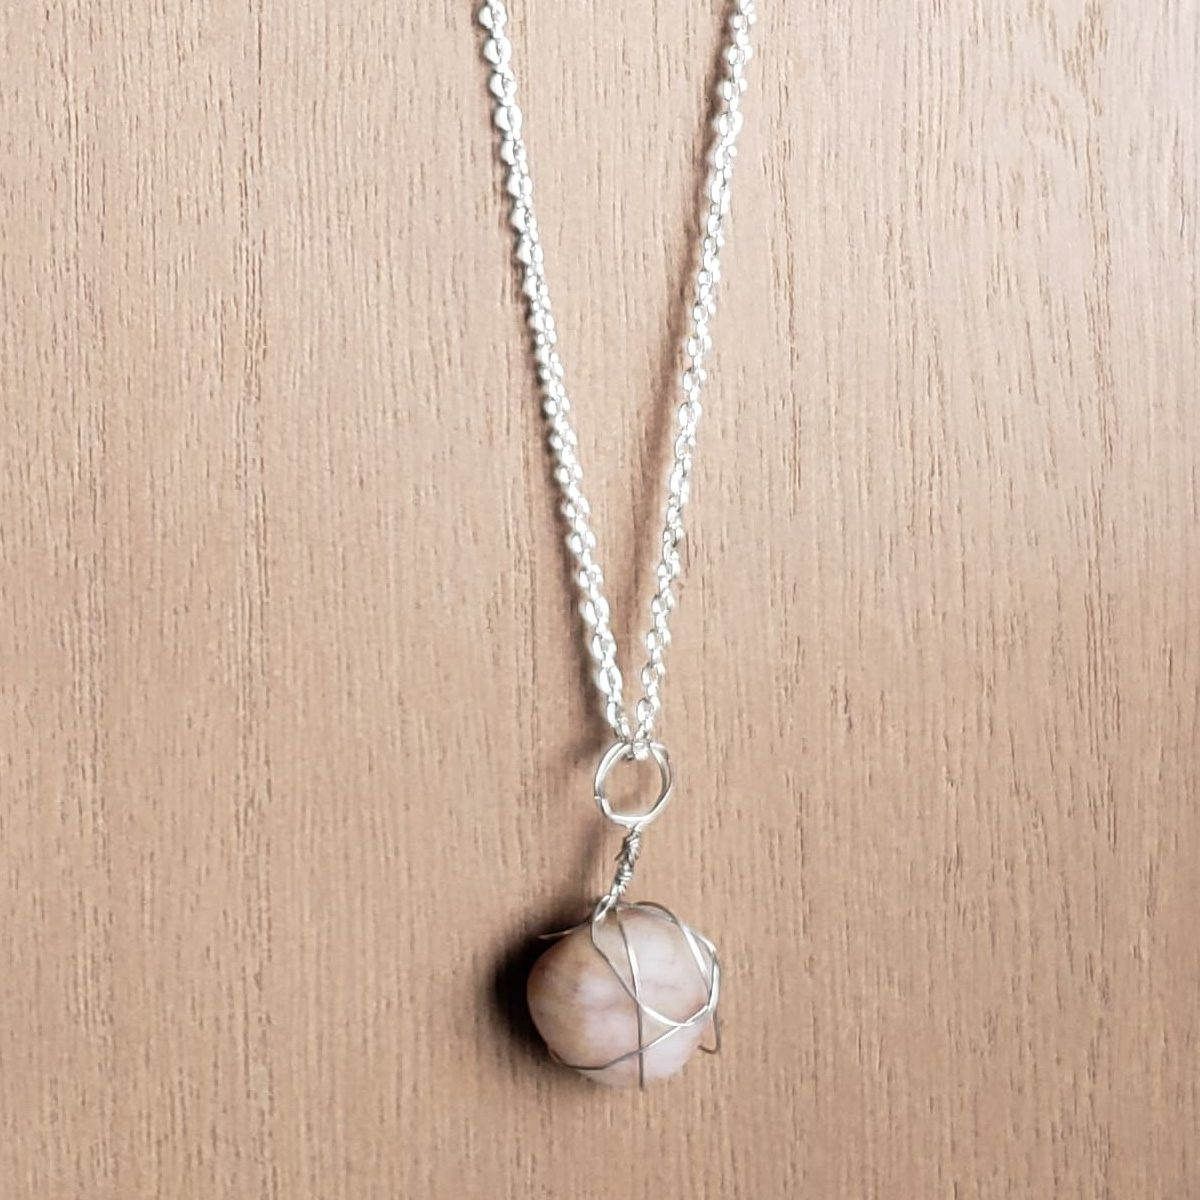 Handcrafted sandy white stone necklace